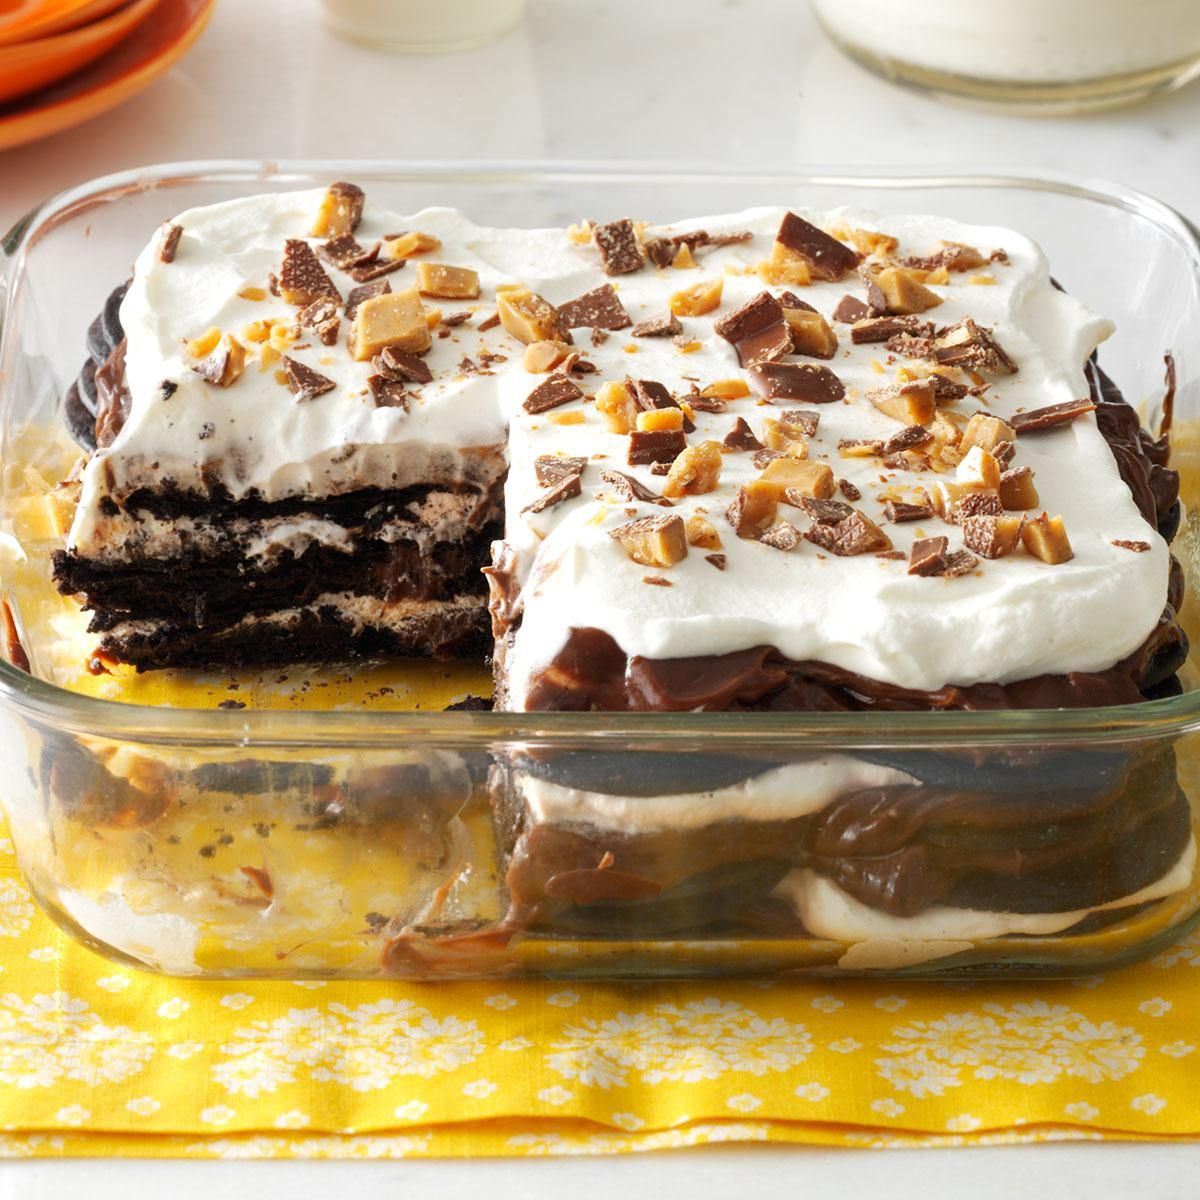 15-Minutes-or-Less Dessert Recipes | Martha Stewart |Quick Recipes For Sweets